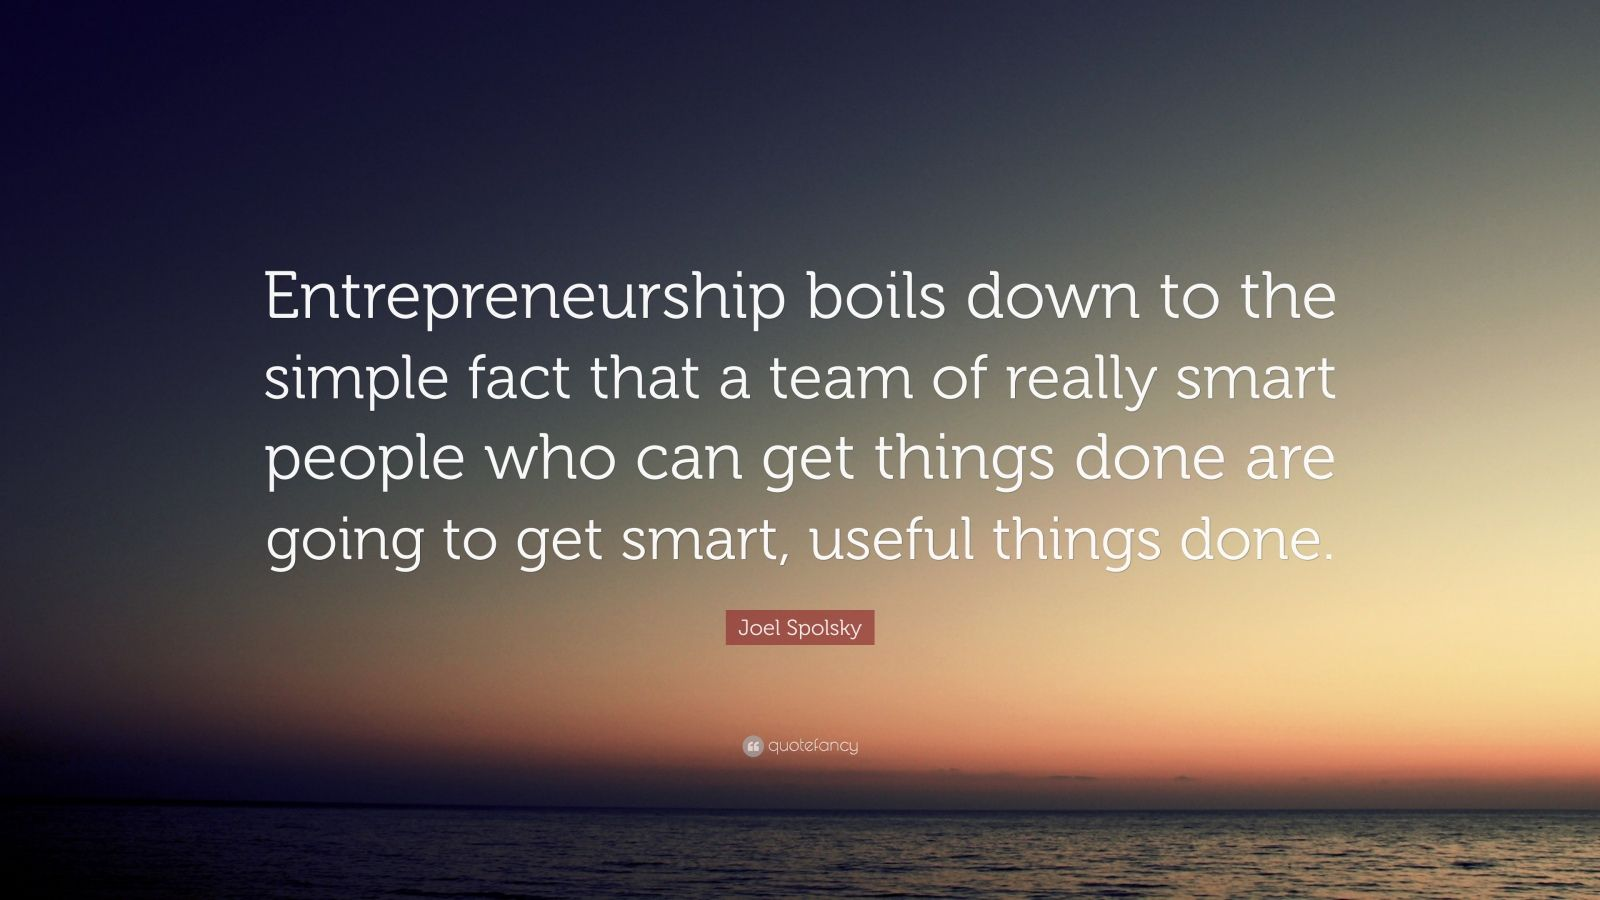 """Joel Spolsky Quote: """"Entrepreneurship boils down to the simple fact that a team of really smart people who can get things done are going to get smart, useful things done."""""""